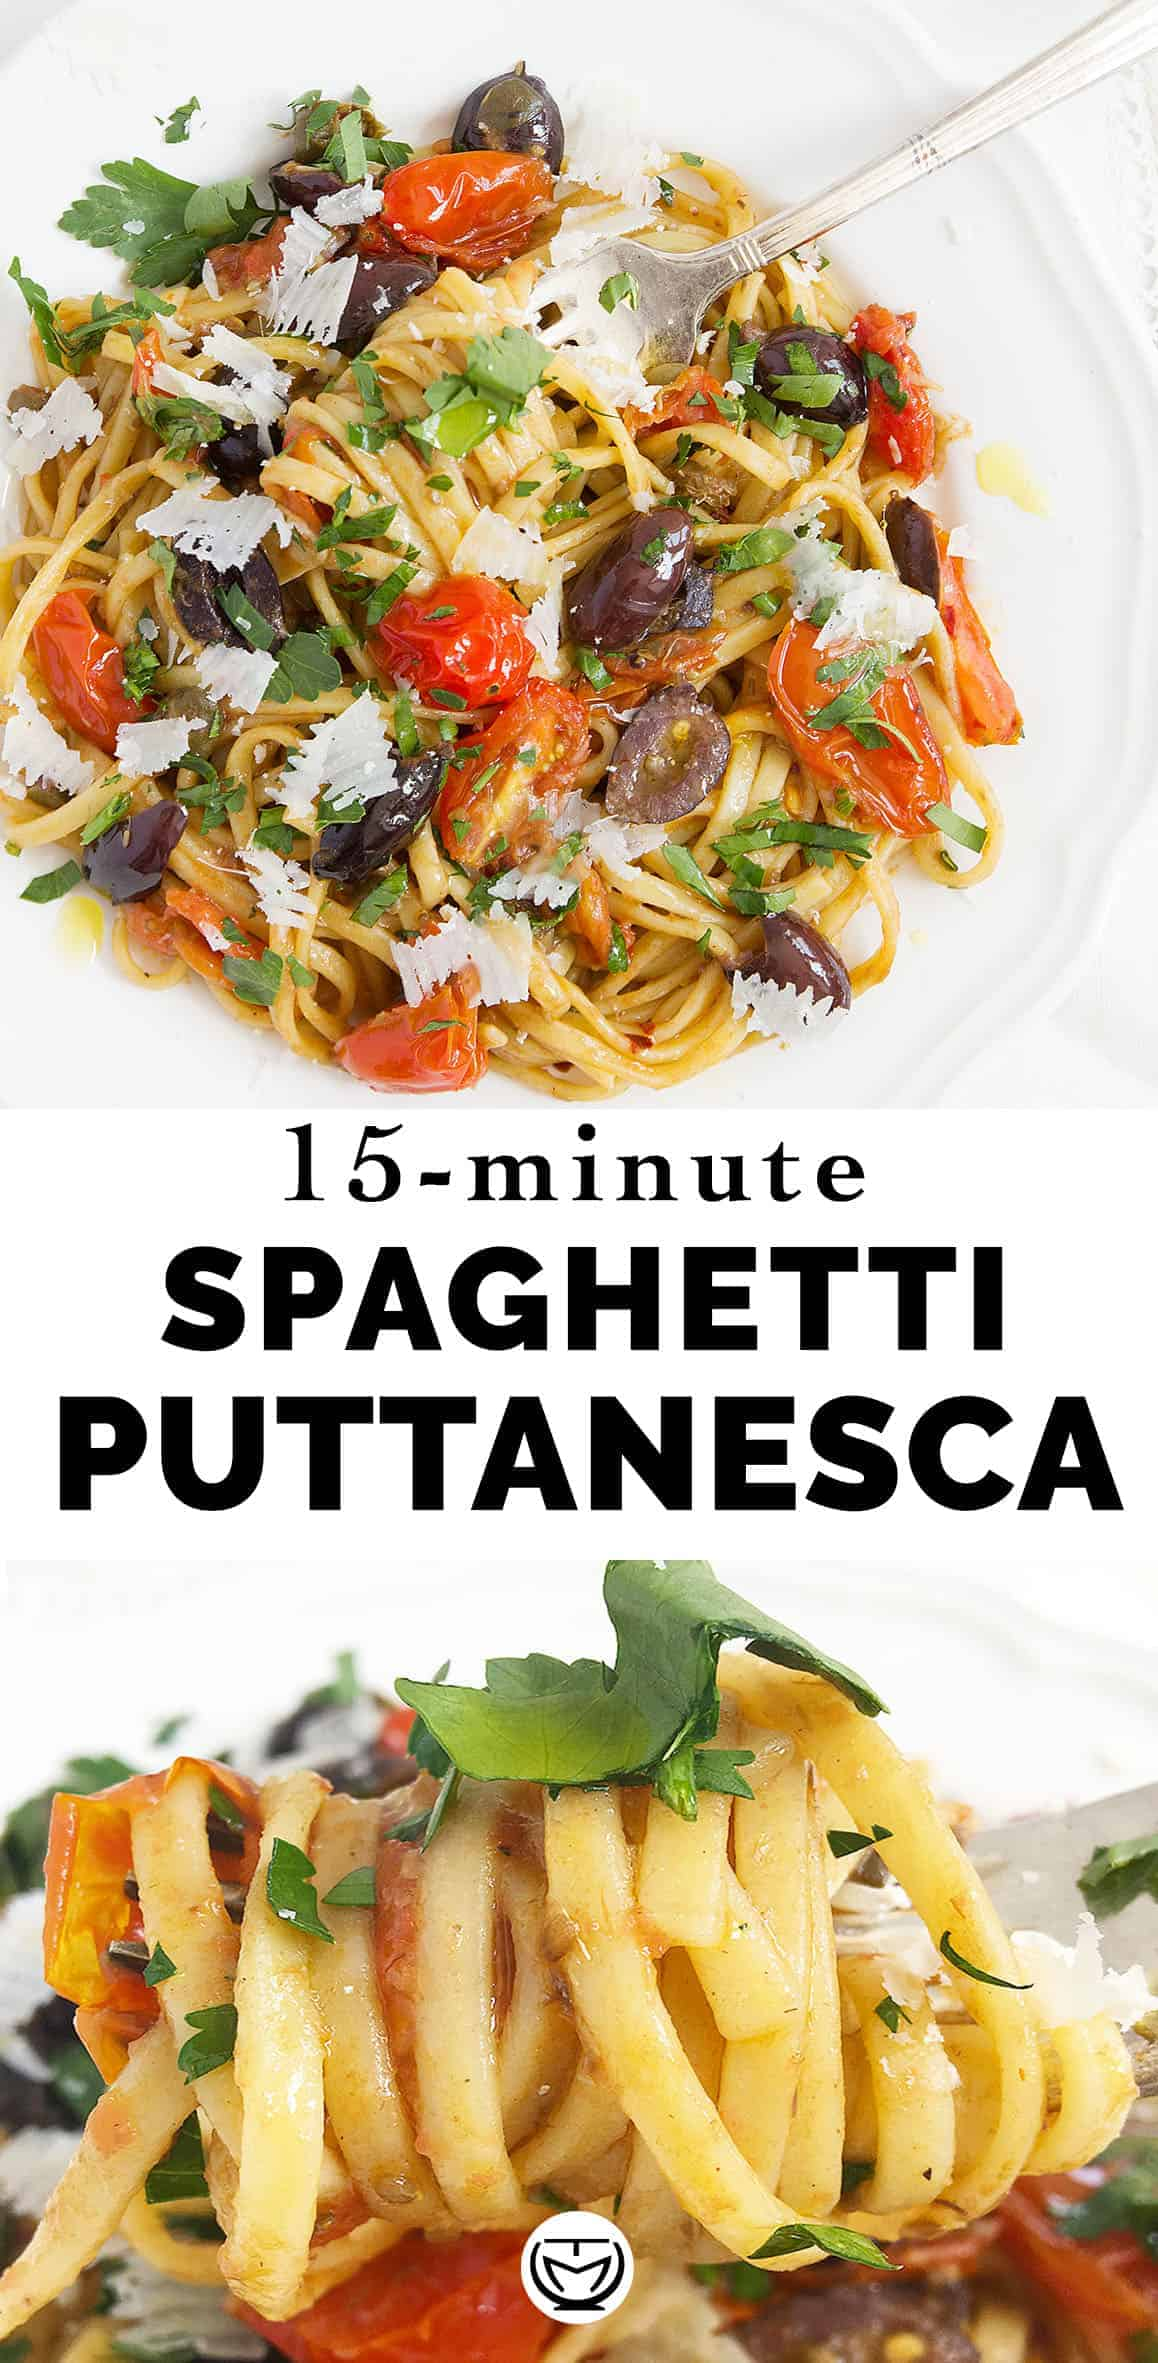 Nothing says Italian food like spaghetti and the unbelievable flavorsome puttanesca sauce recipe is one of the best pasta sauces you can go for. Hey friends, I'm talking of a luscious bowl of pasta full of fiery flavors and ready in 15 minutes.